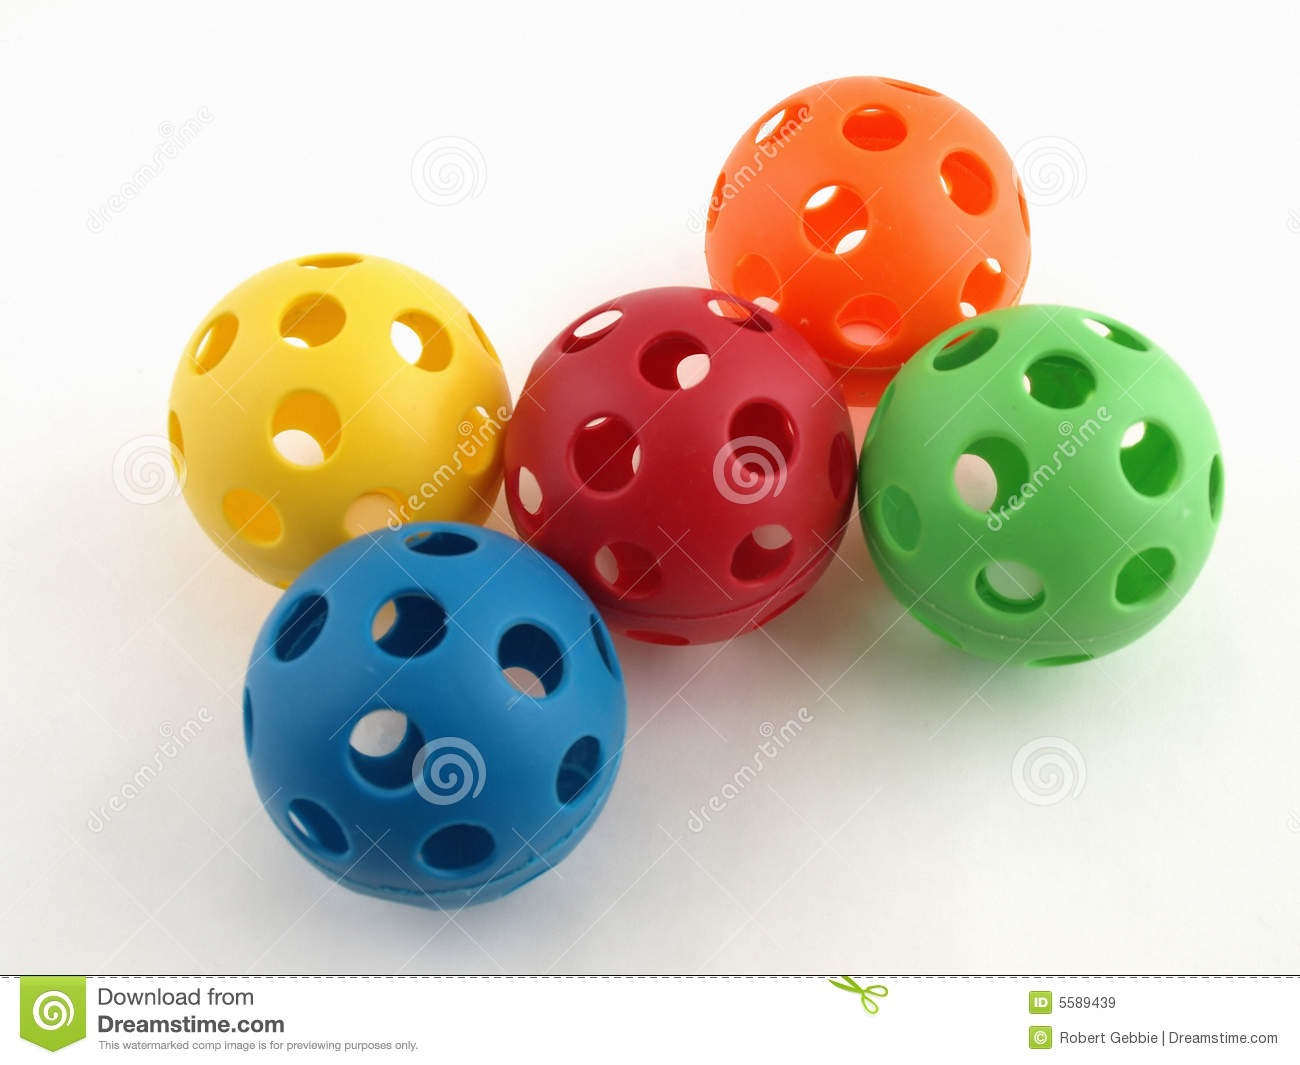 Plastic Toy Balls : Colorful plastic toy balls royalty free stock images